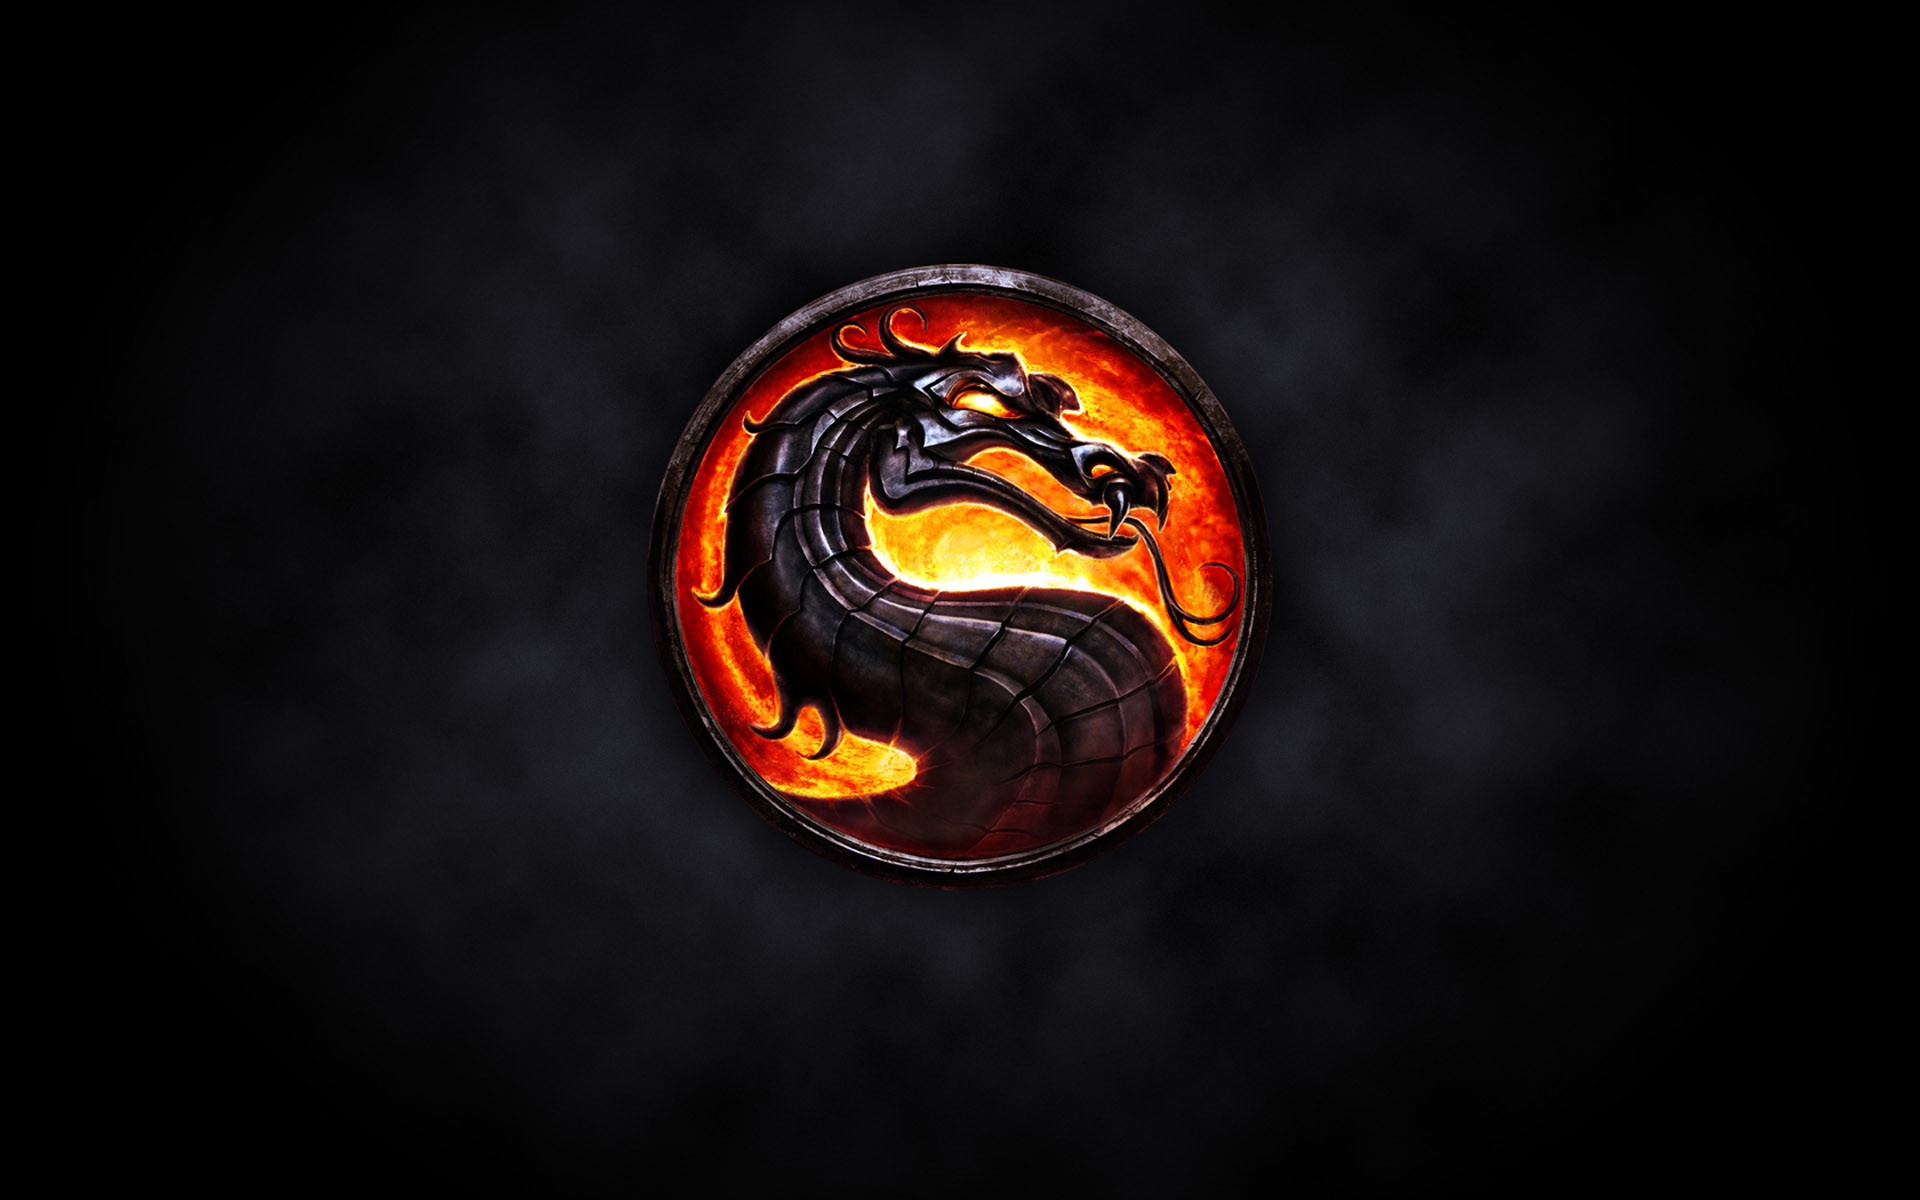 1920x1200 Mortal Kombat Logo Hd wallpaper 839296